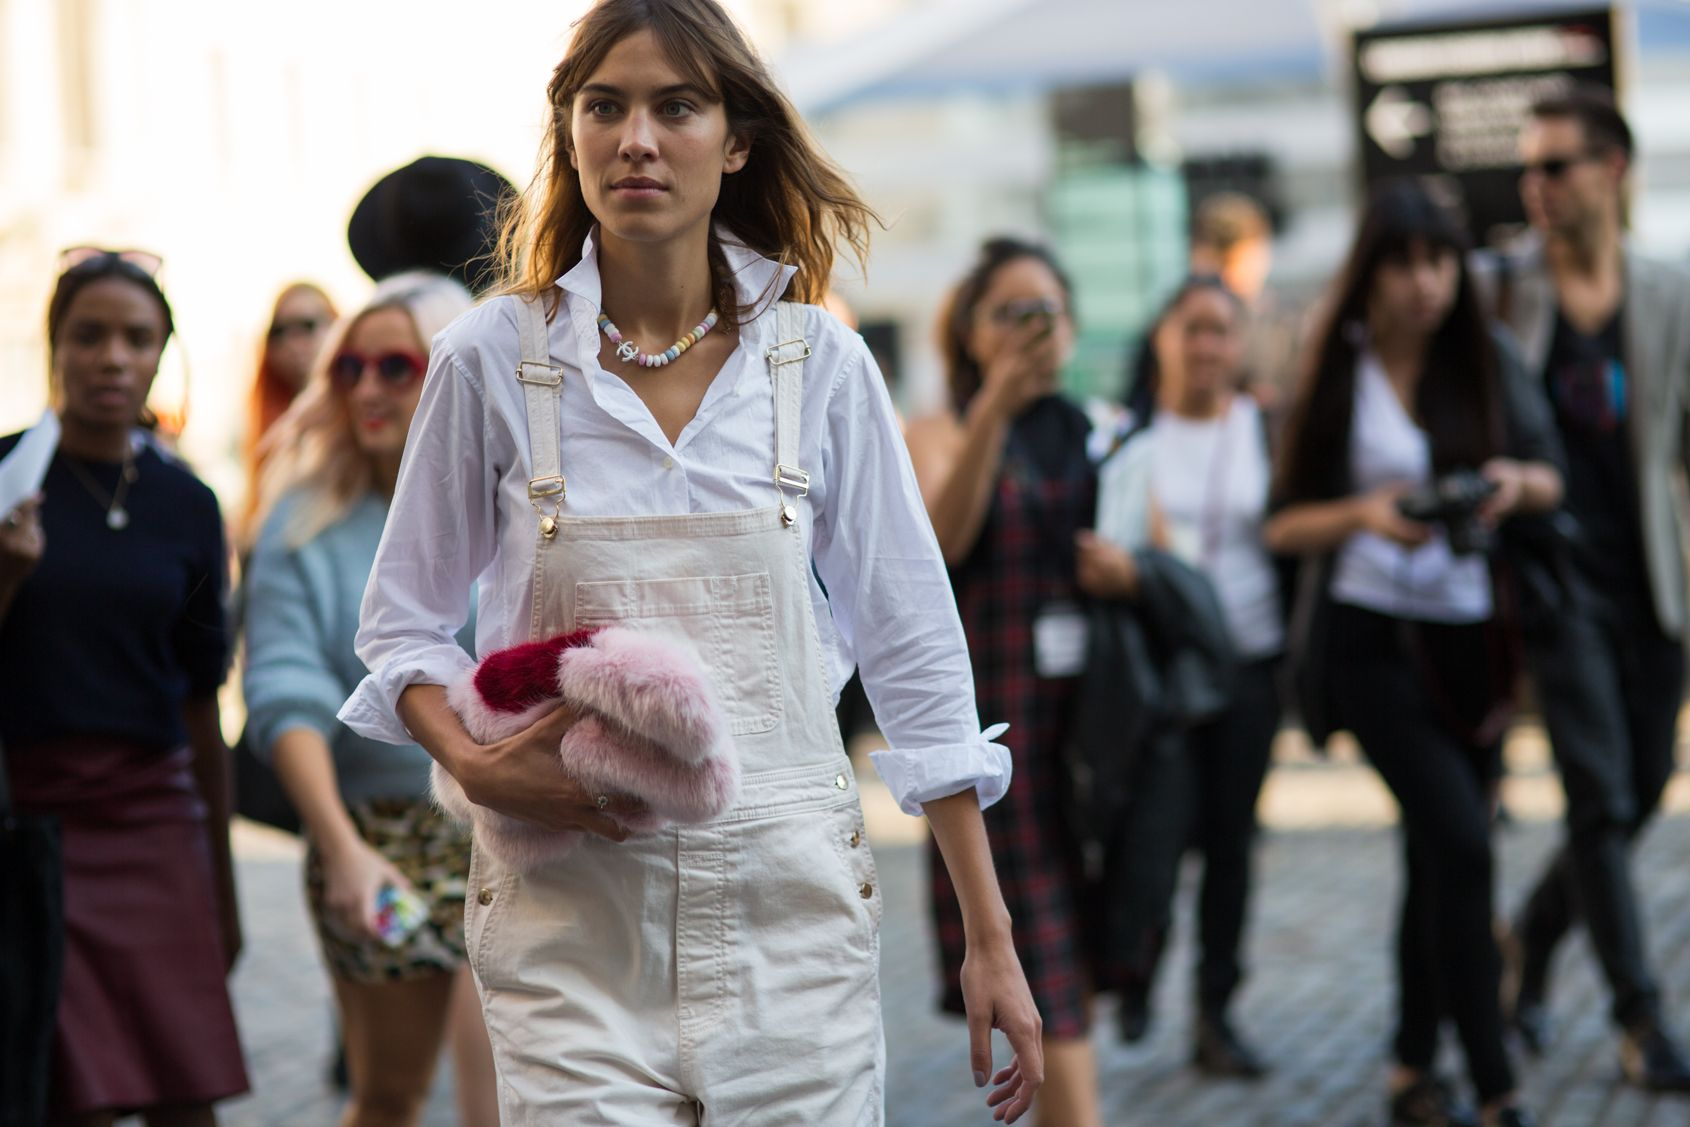 #nylonfw london spring 2015 day 1: best street style